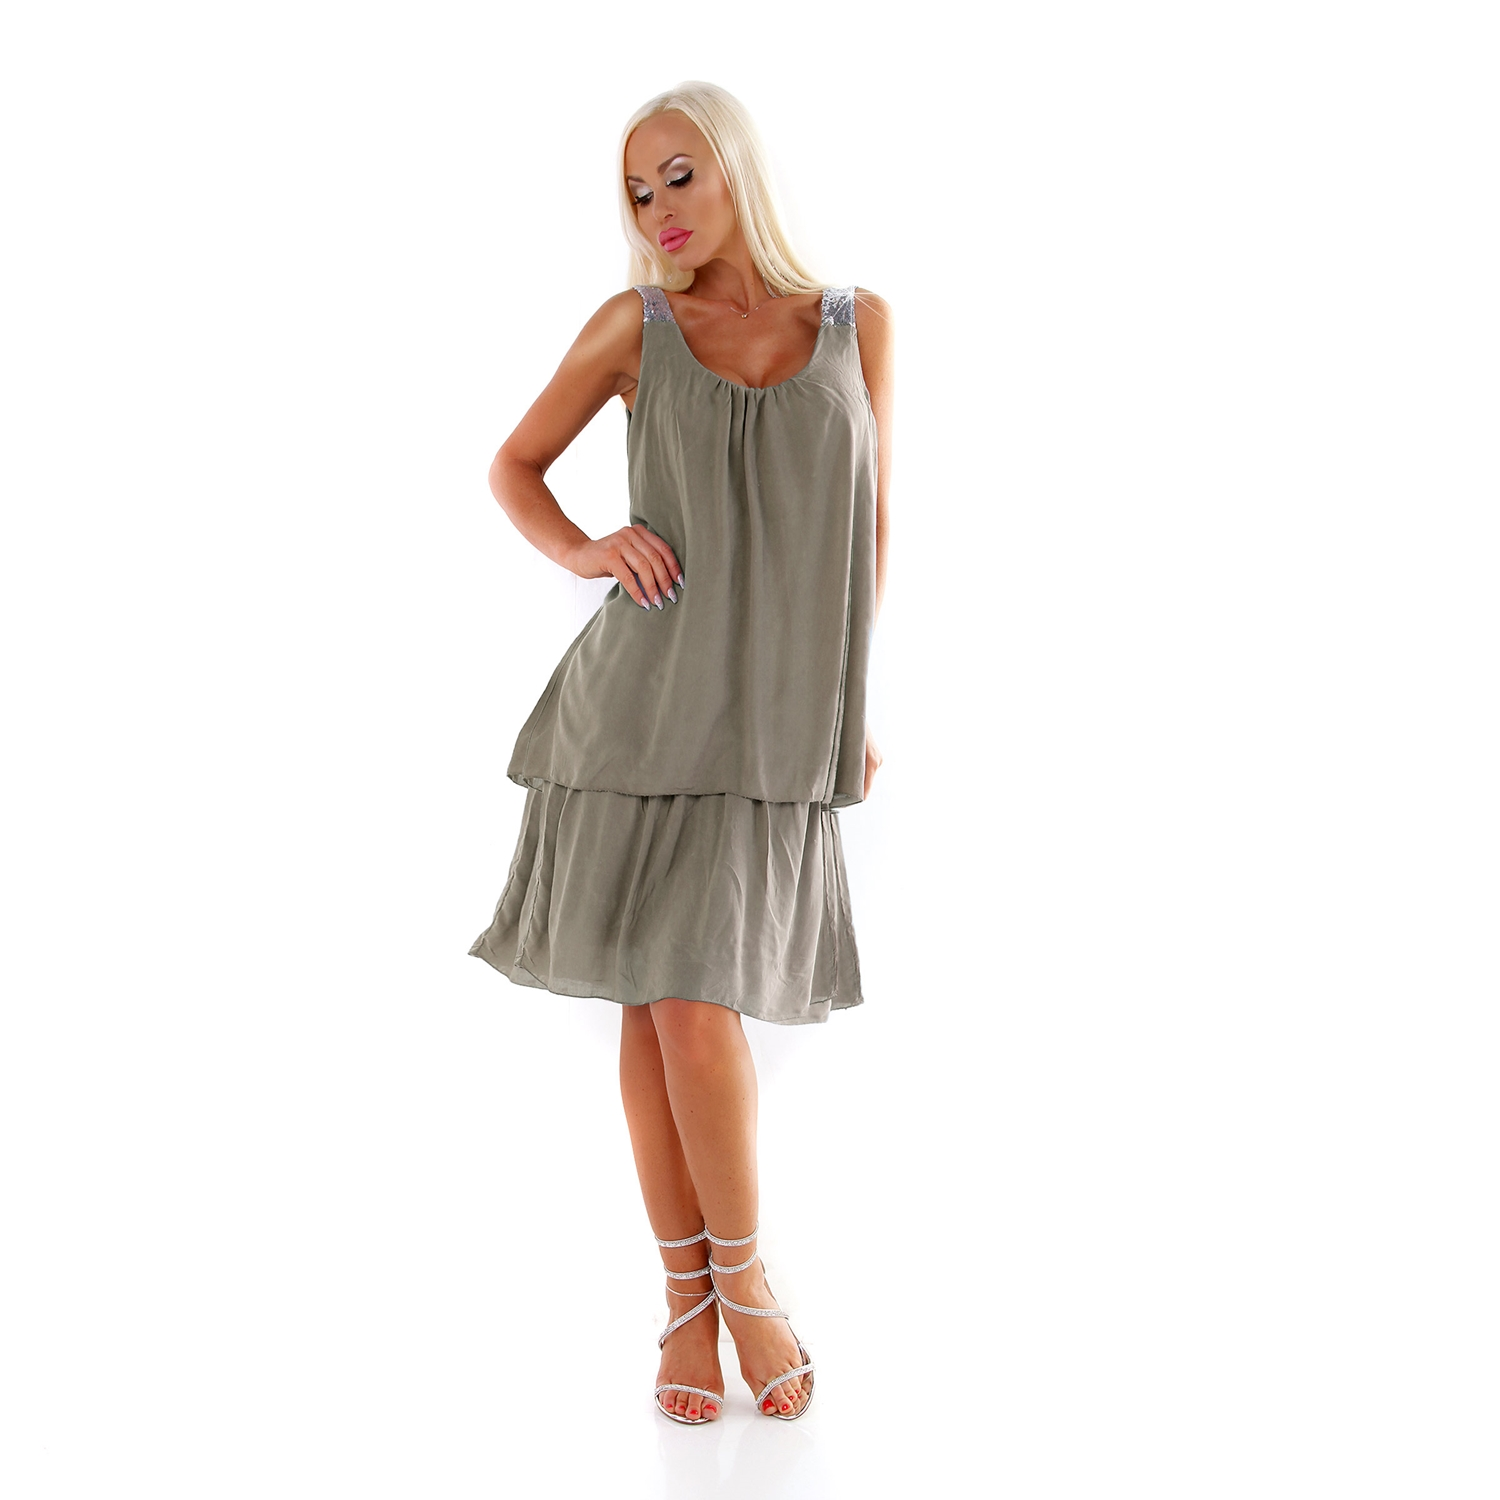 Damen Sommer Kleid A-Linie Tunikakleid in Lagen Look